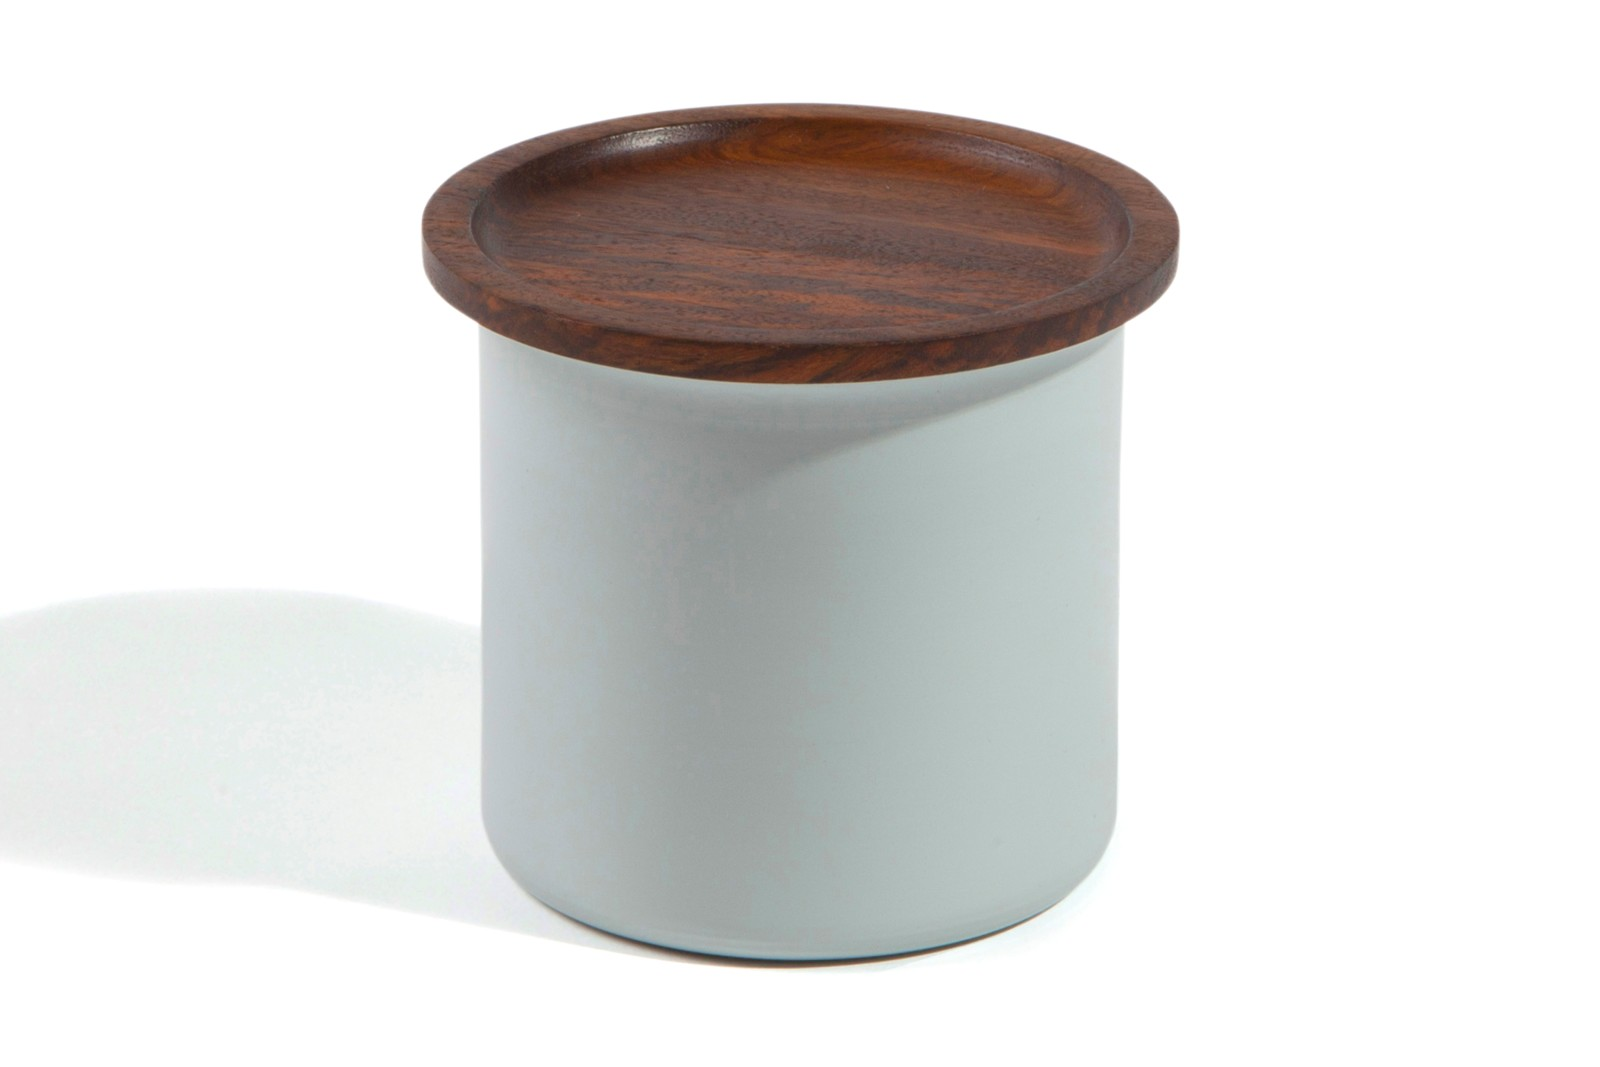 Ayasa Storage Container Grey with Wooden Lid, 0.5L